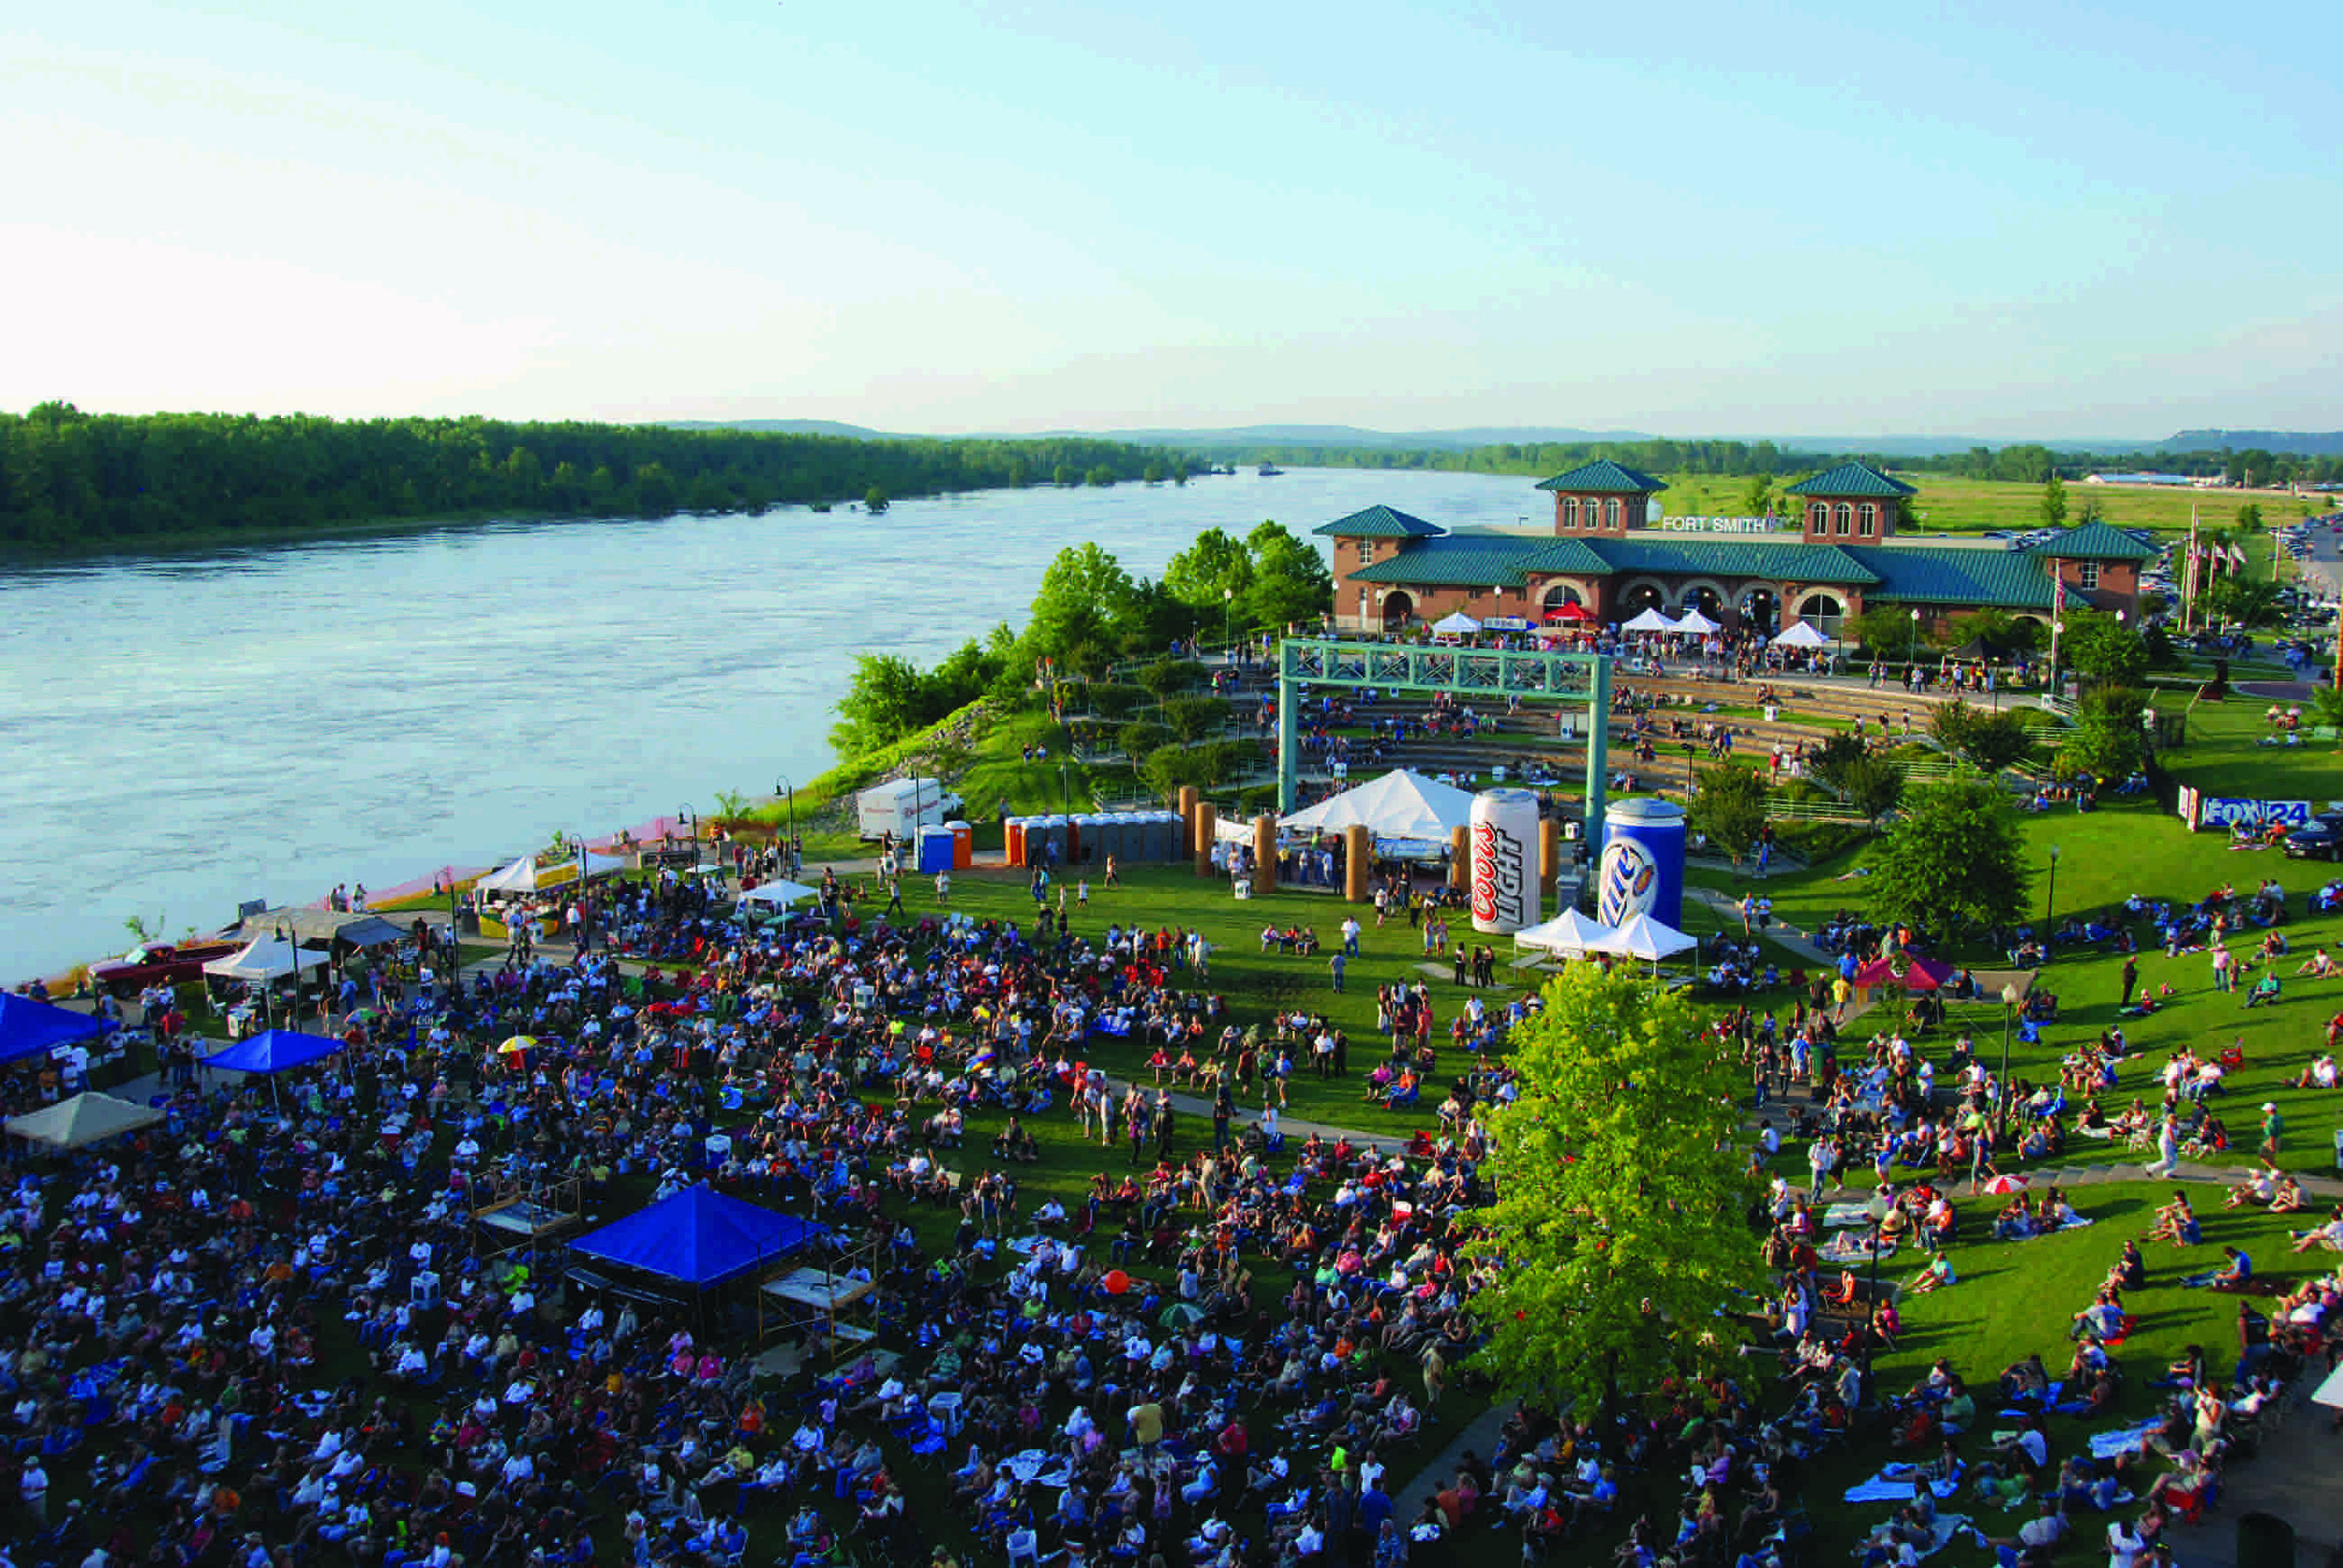 The inaugural Fort Smith Riverfront Blues Festival in 2018 (Source: 64.6 Downtown)